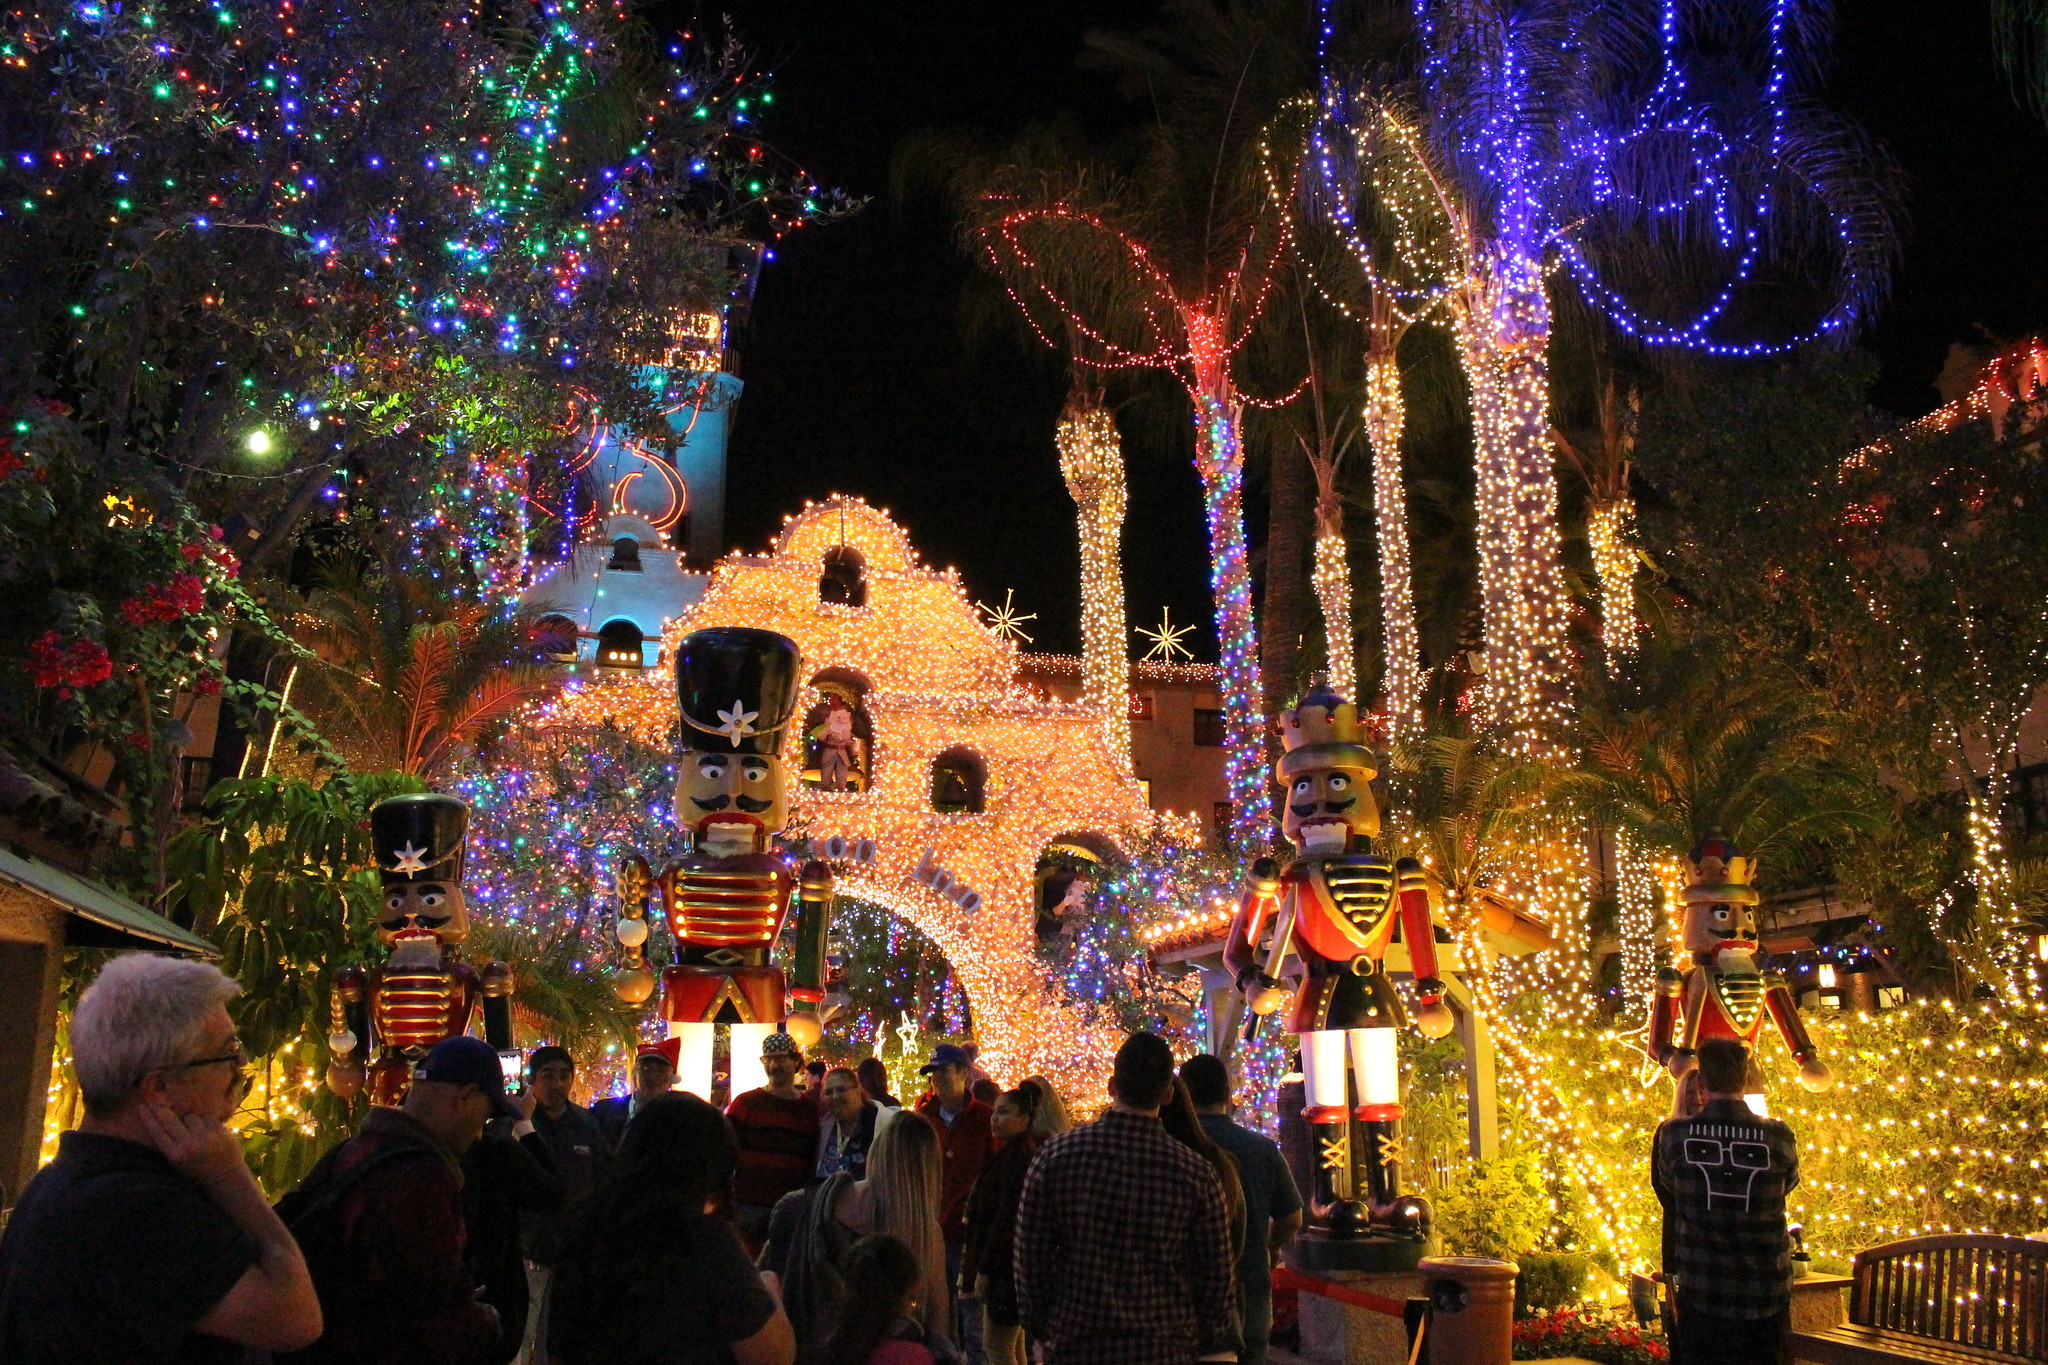 Festival of Lights at the Mission Inn